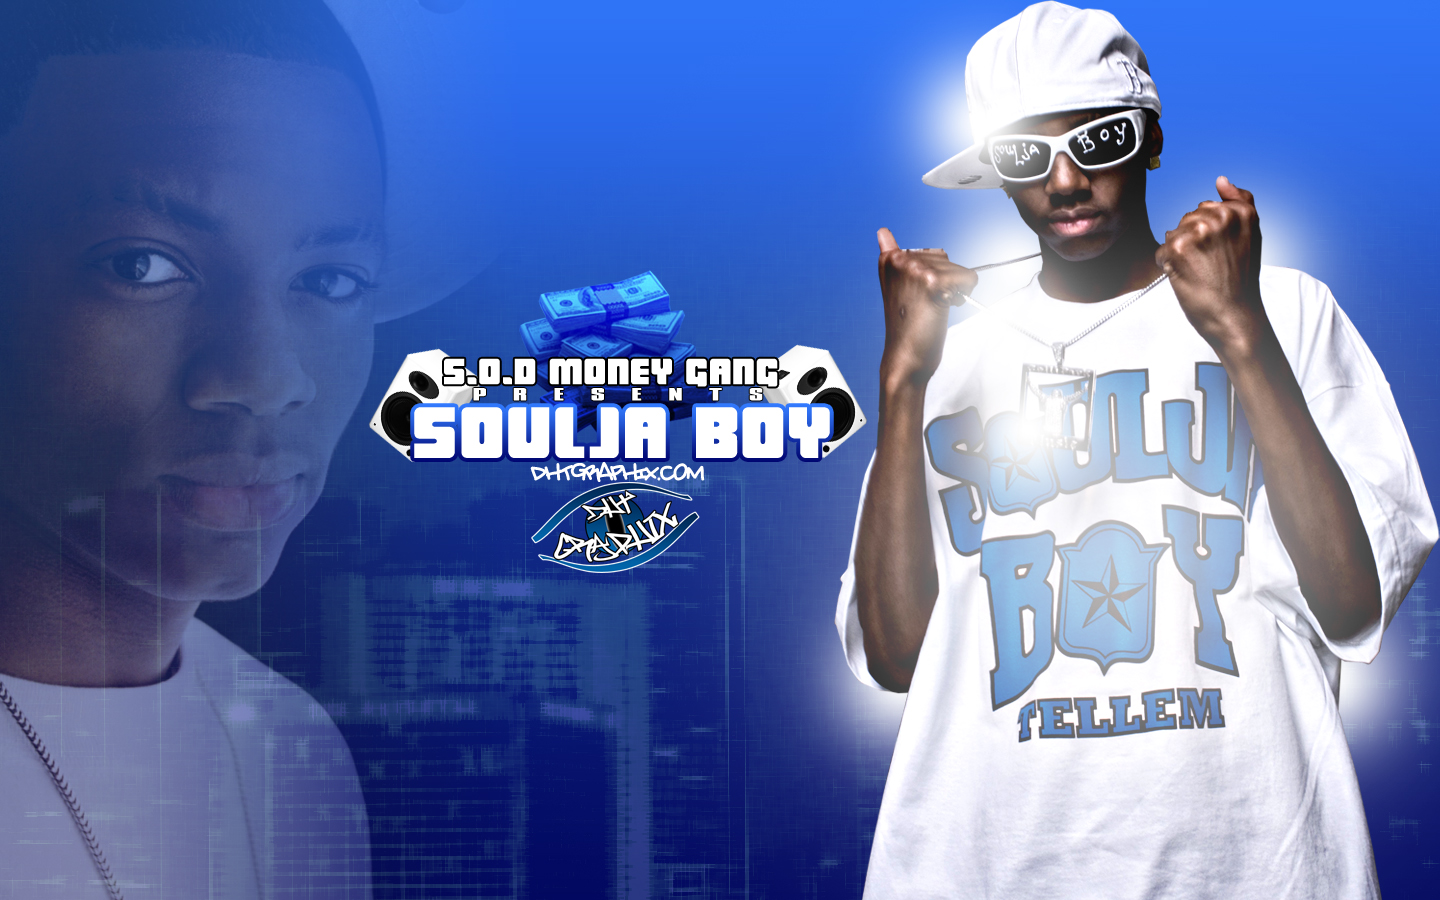 Desktop 3d Super Hd Wallpapers Download Soulja Boy Wallpaper Gallery